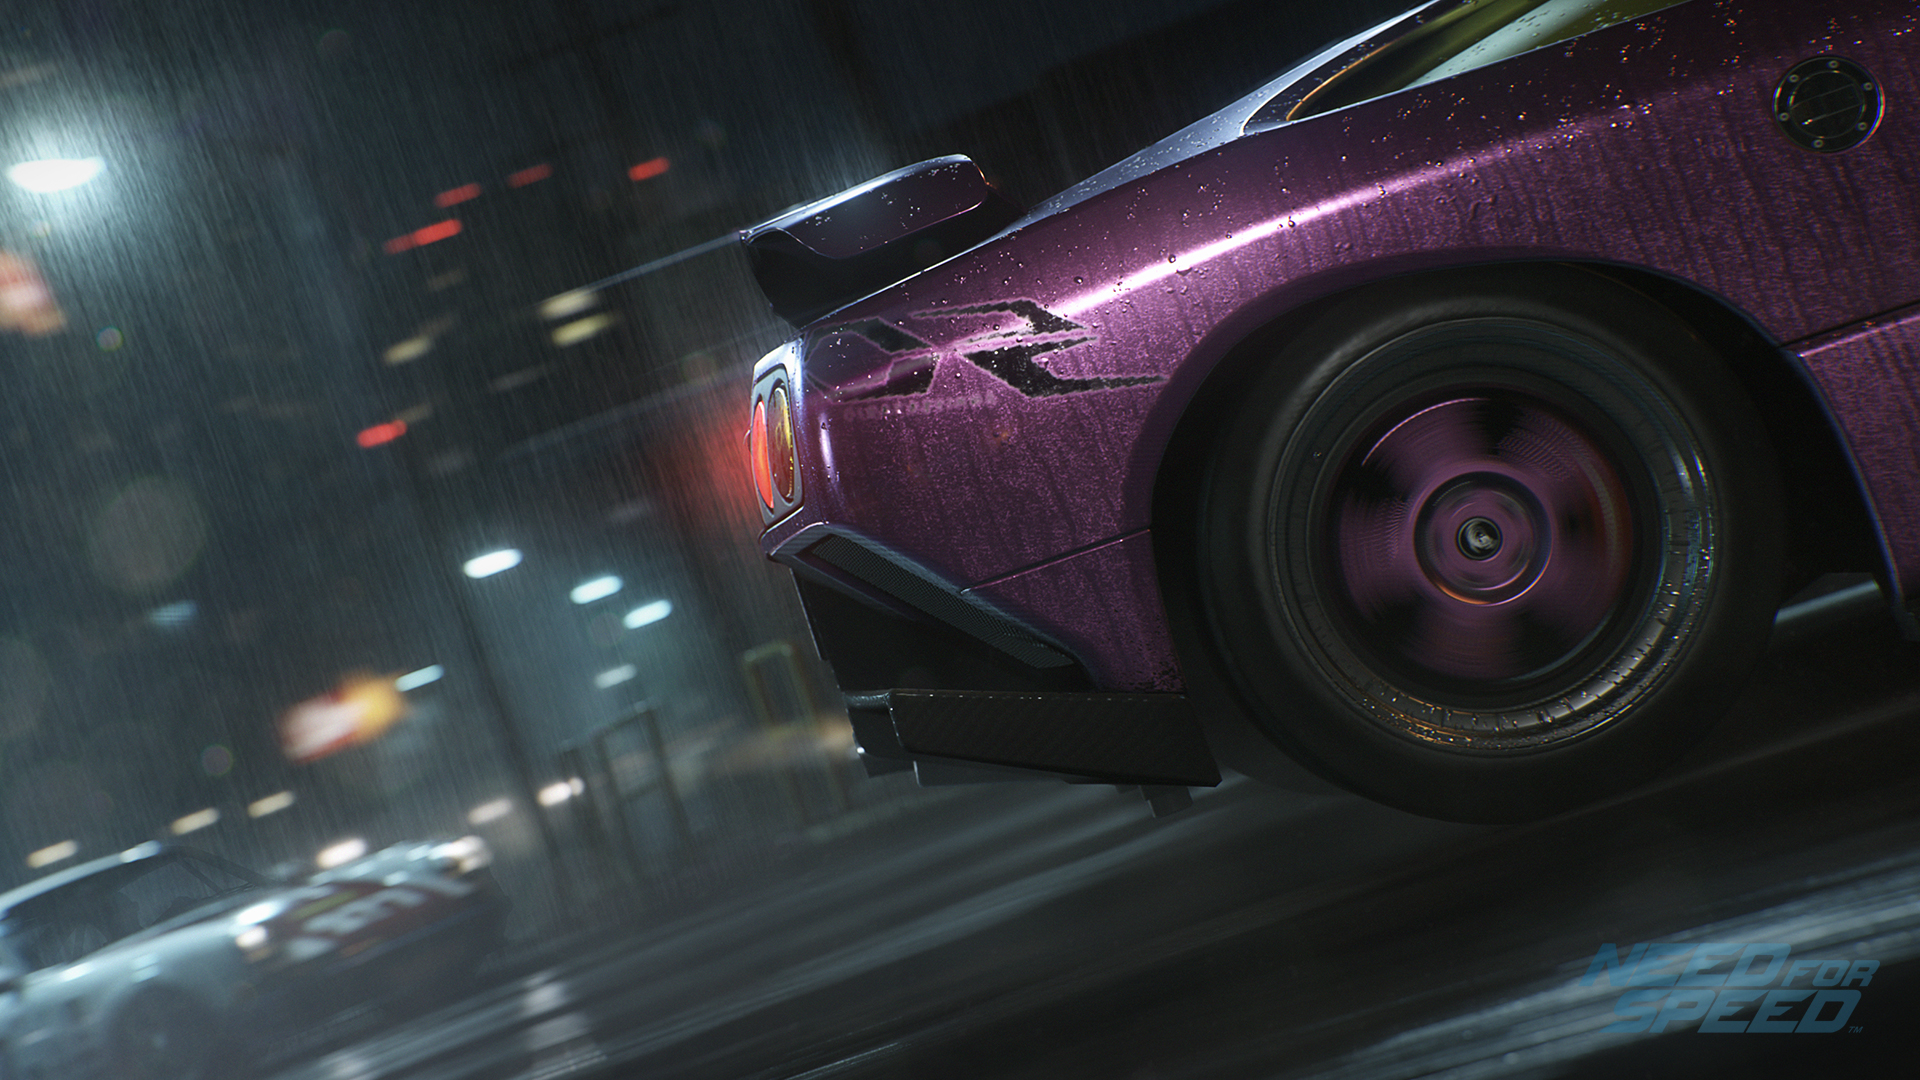 Wallpaper download ps4 - Need For Speed 2015 New Wallpapers